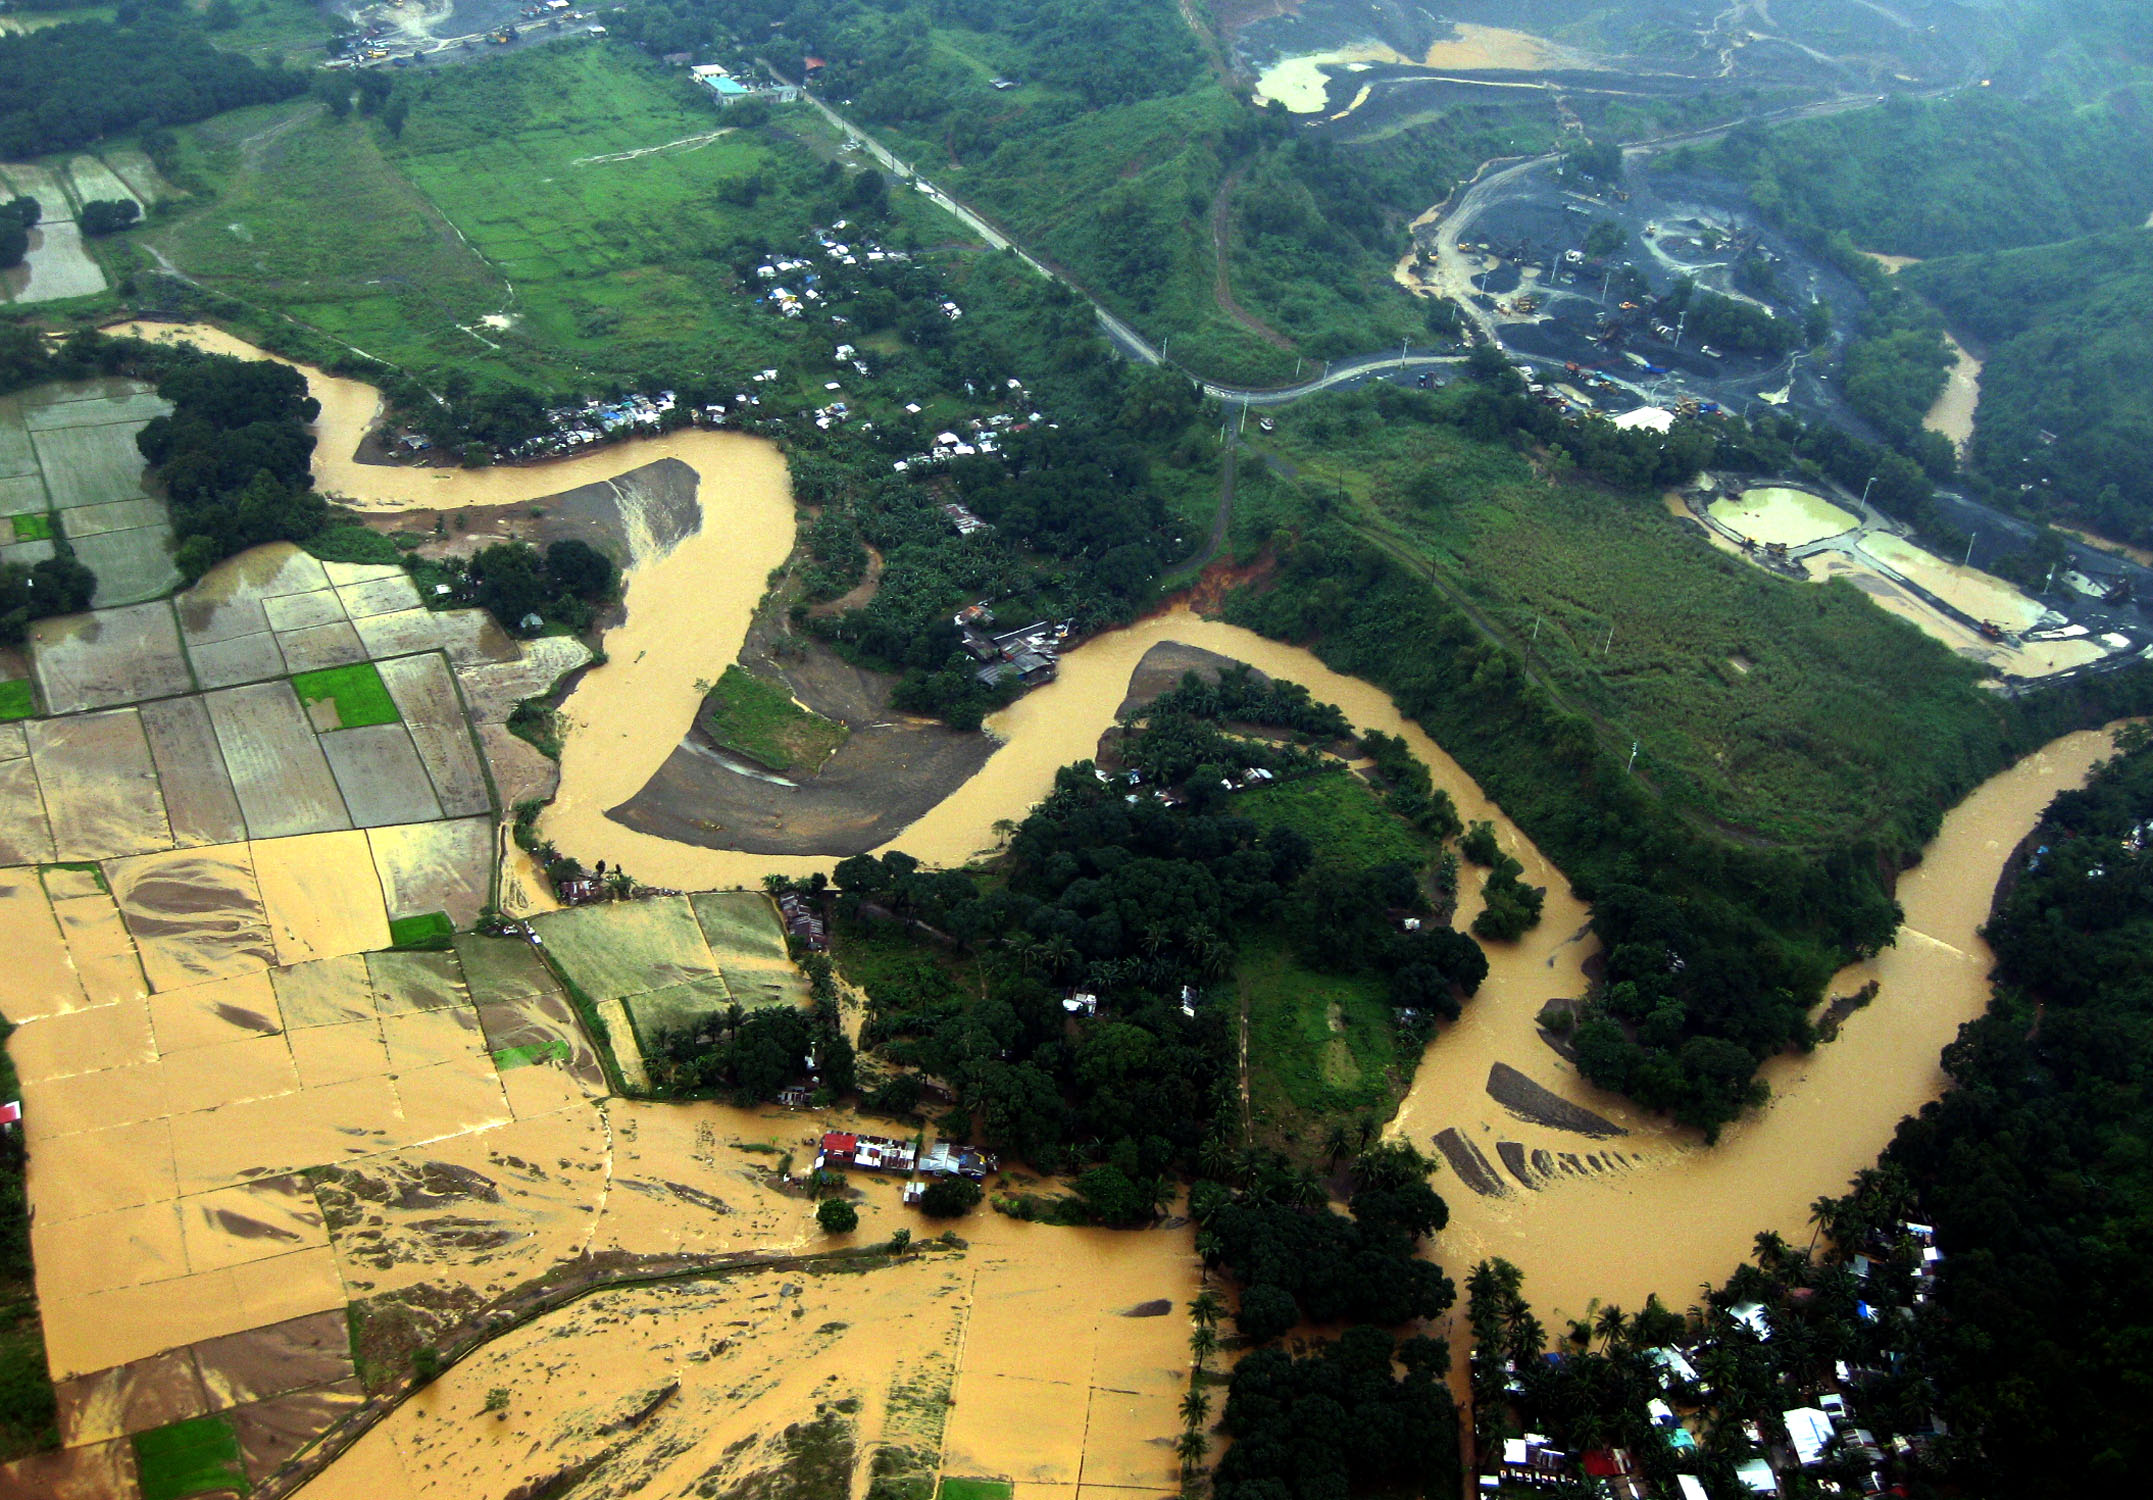 An aerial view of the Marikina district east of Manila and the swollen Marikina river that flooded many riverside communities